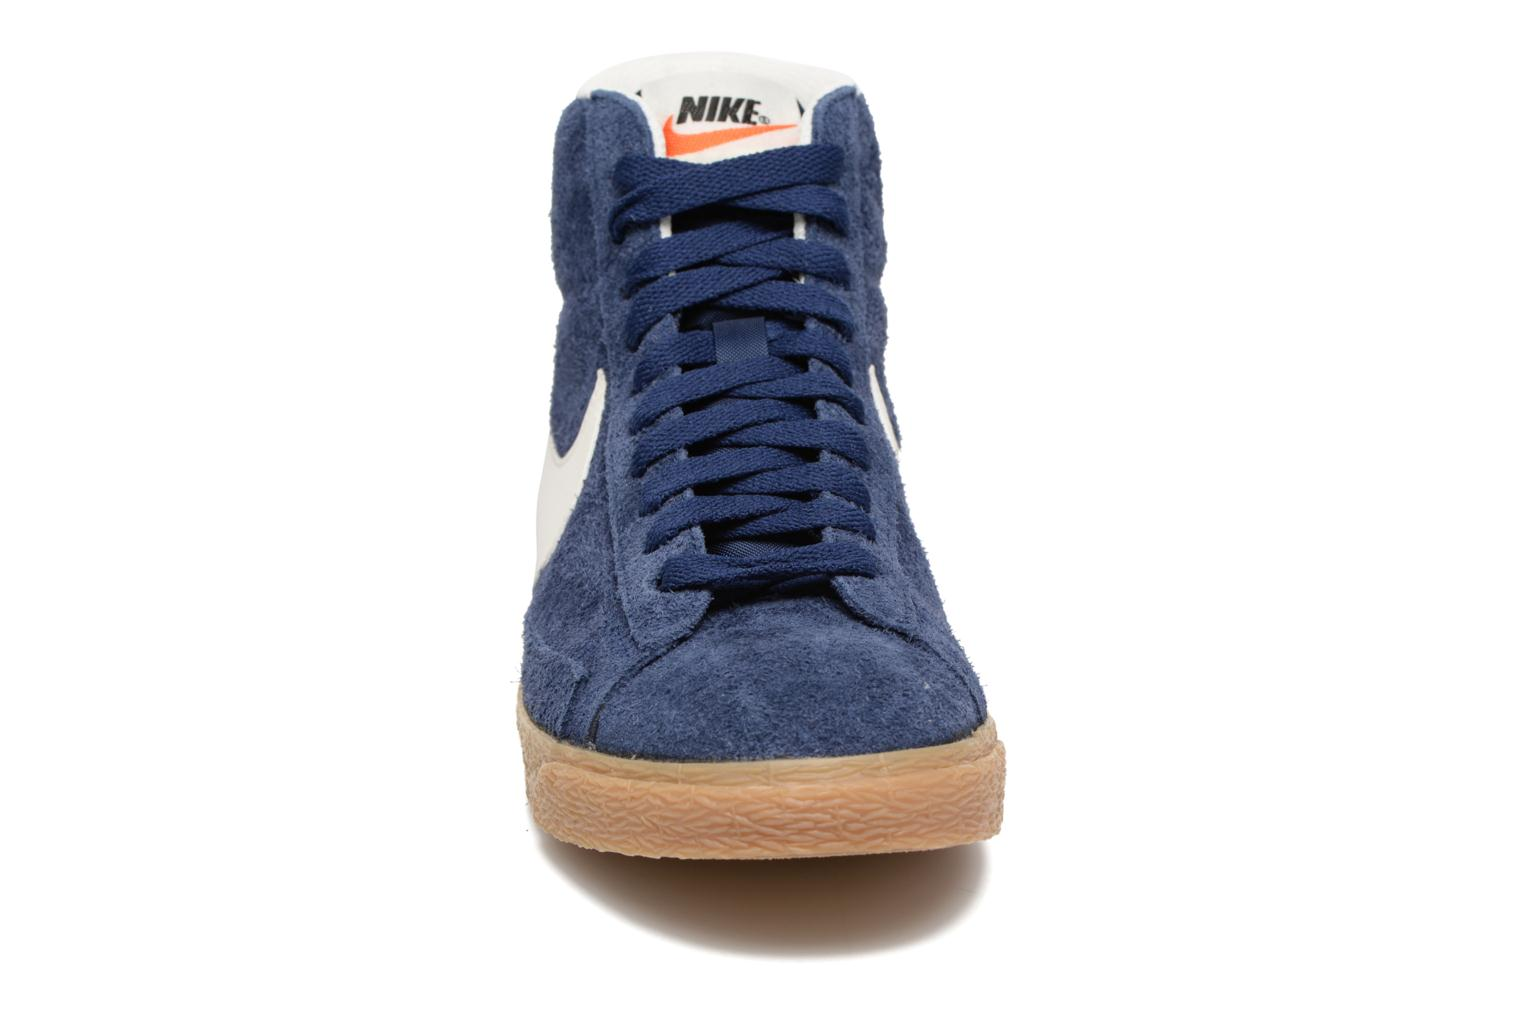 Wmns Blazer Mid Suede Vintage Binary Blue/Ivory-Gum Light Brown-Black